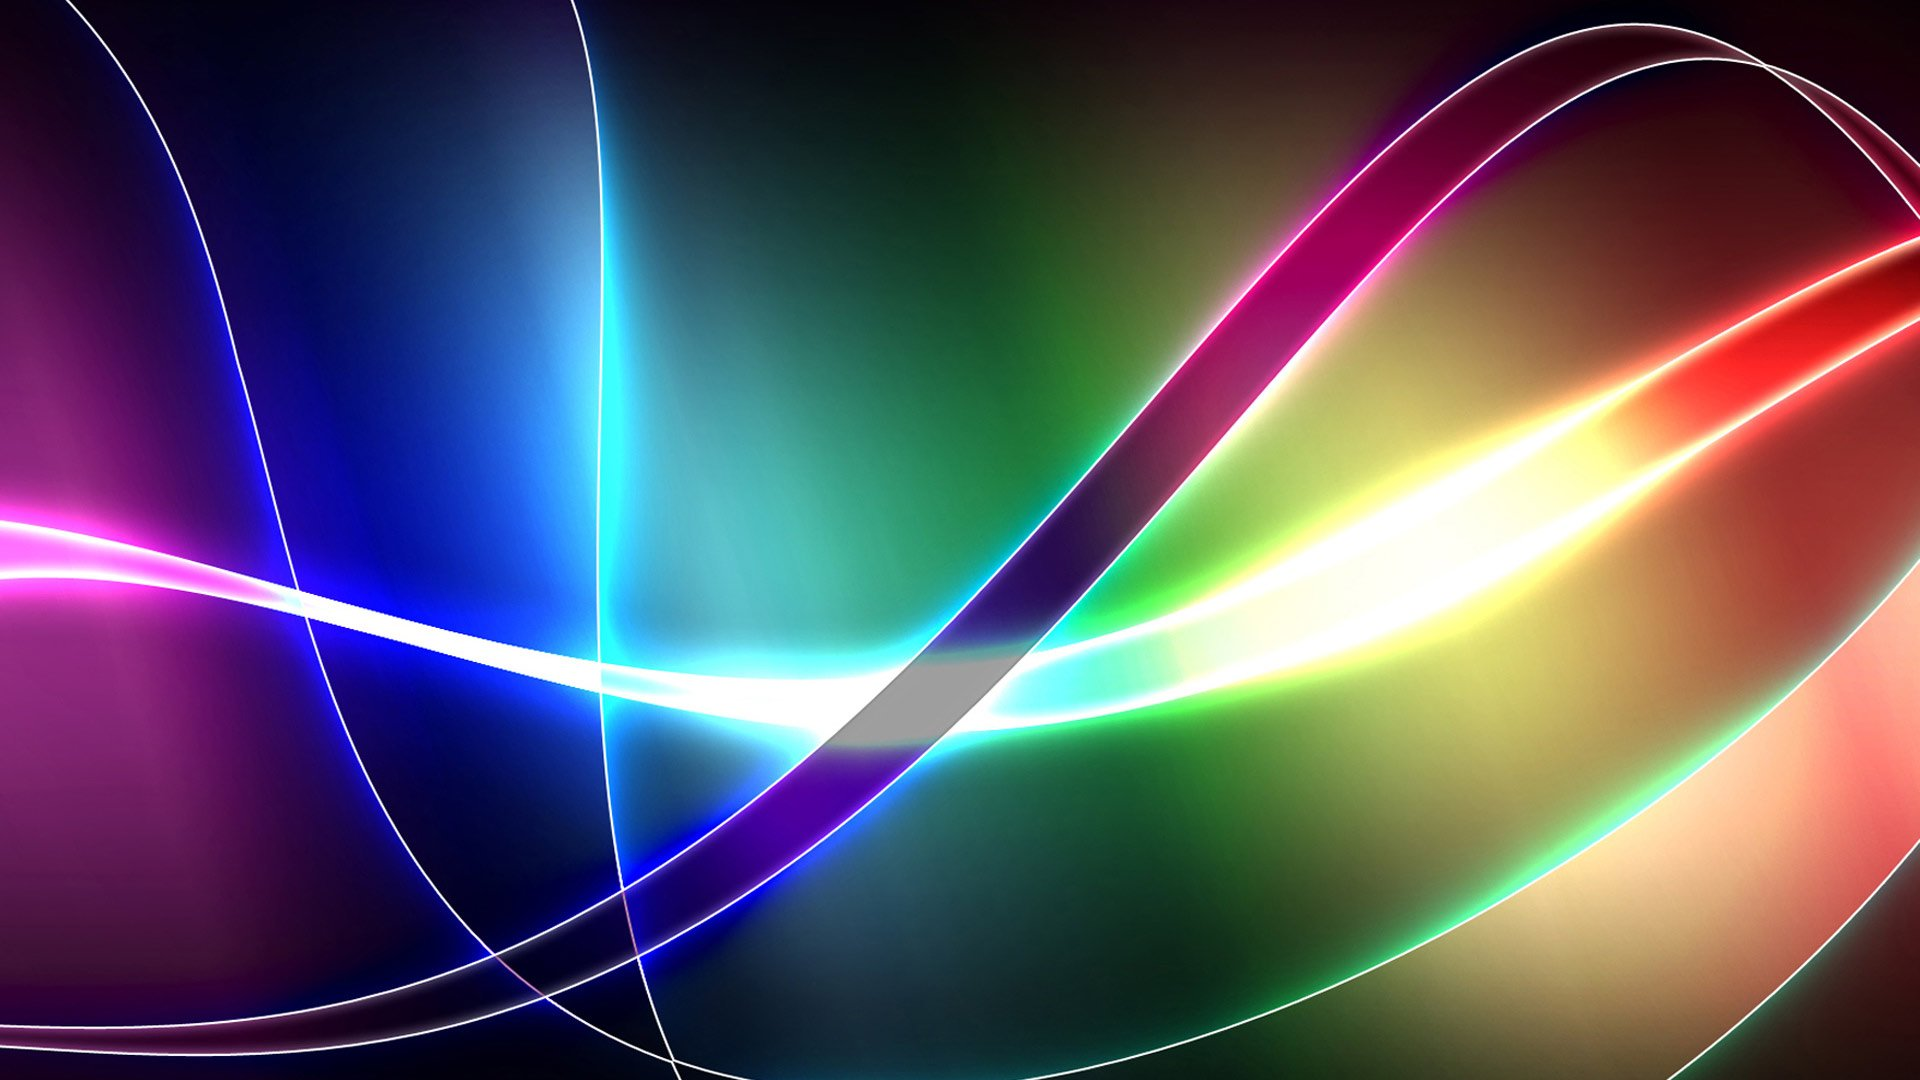 Colorful Abstract Backgrounds 3217 Hd Wallpapers in Abstract ...